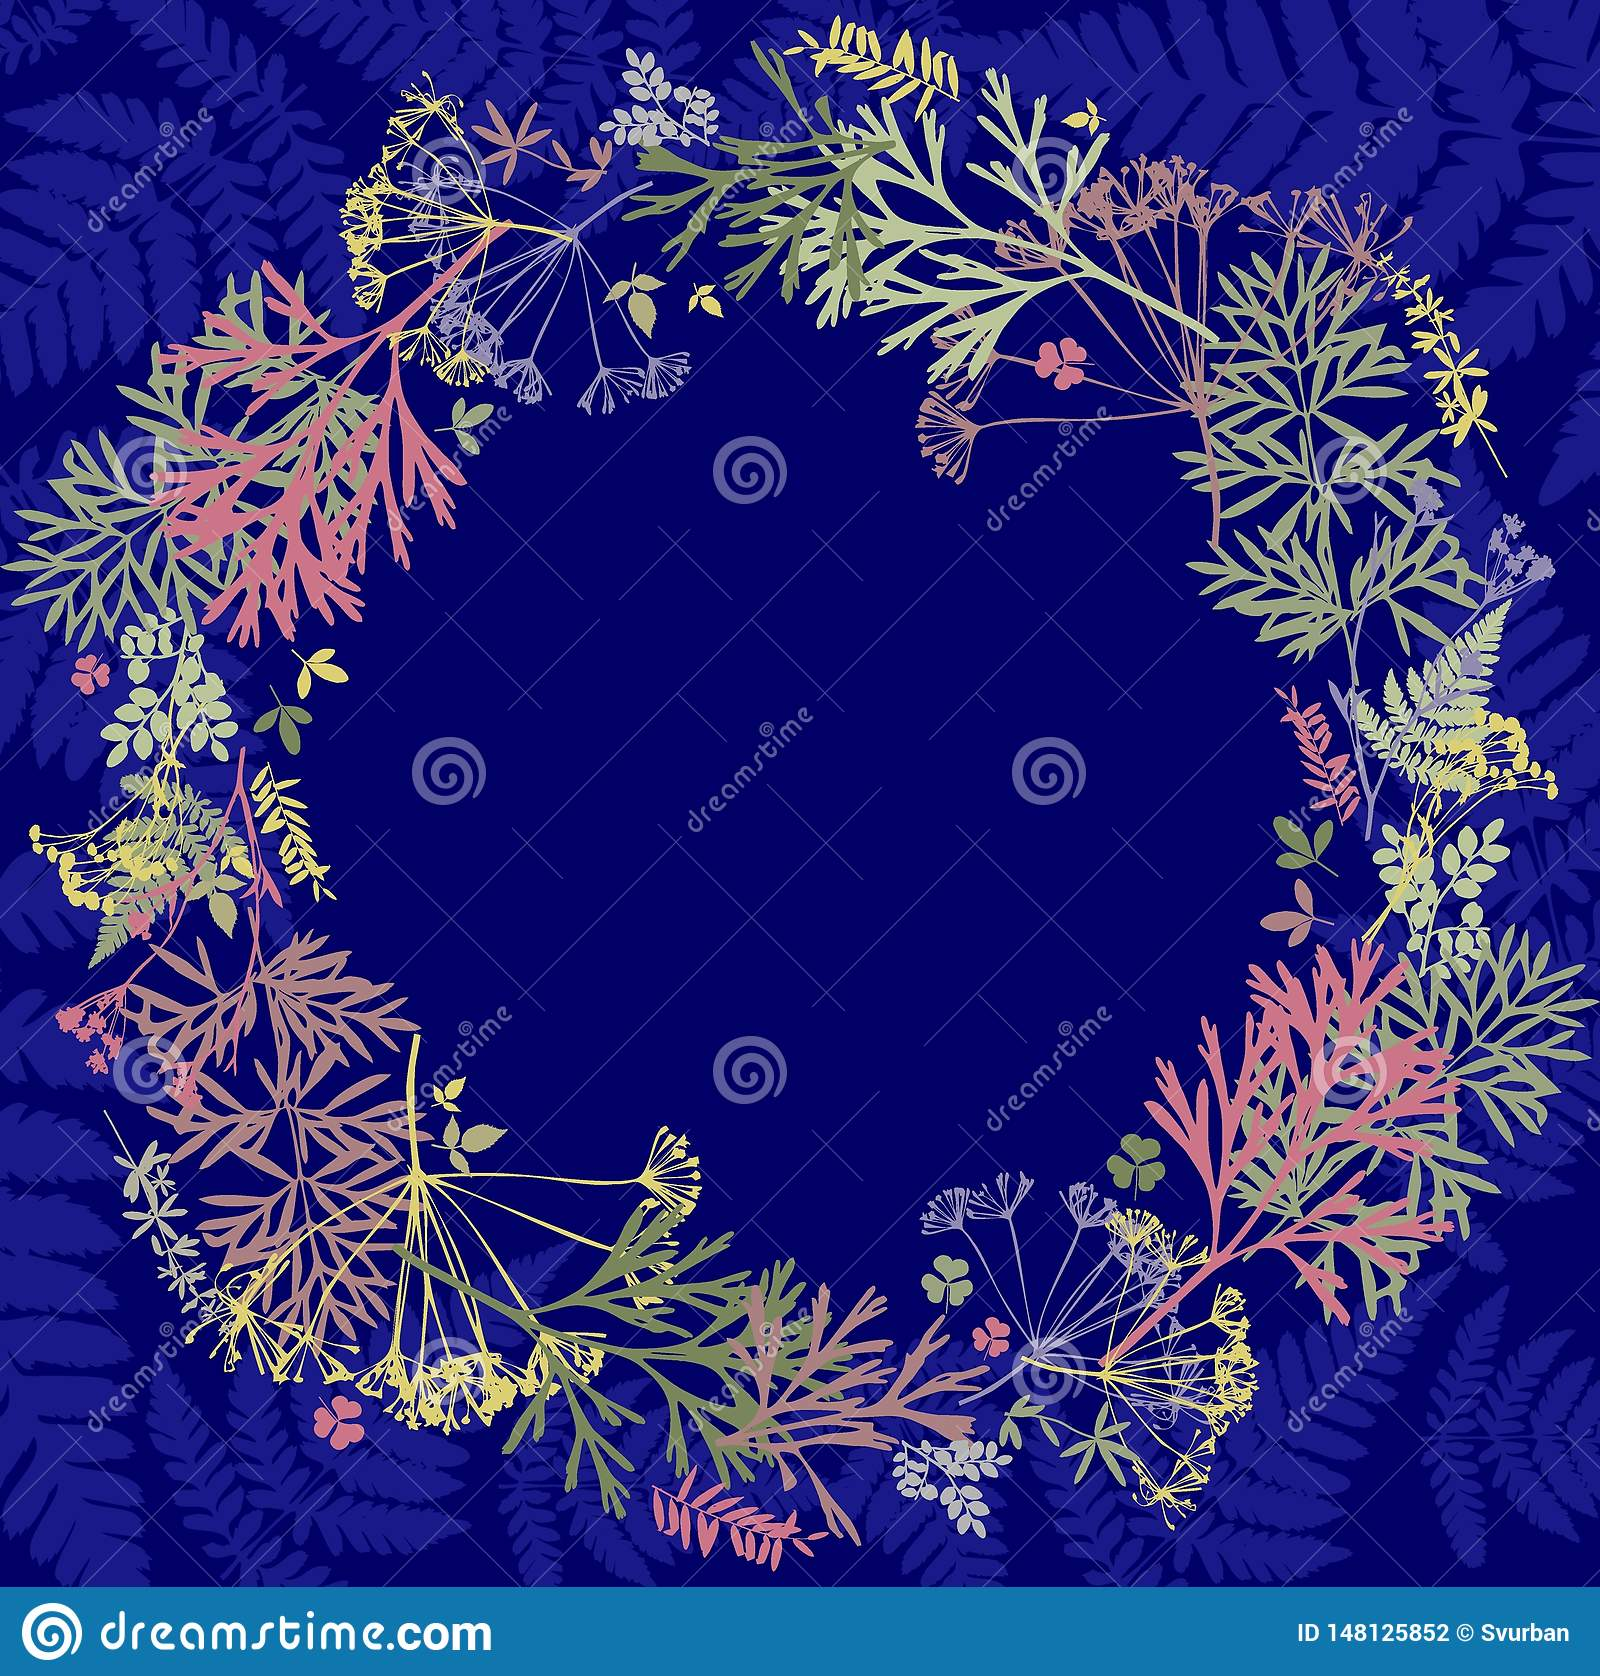 Herbarium with wildflowers, branches, leaves in a circle. Botany on a blue background, greeting card, wreath